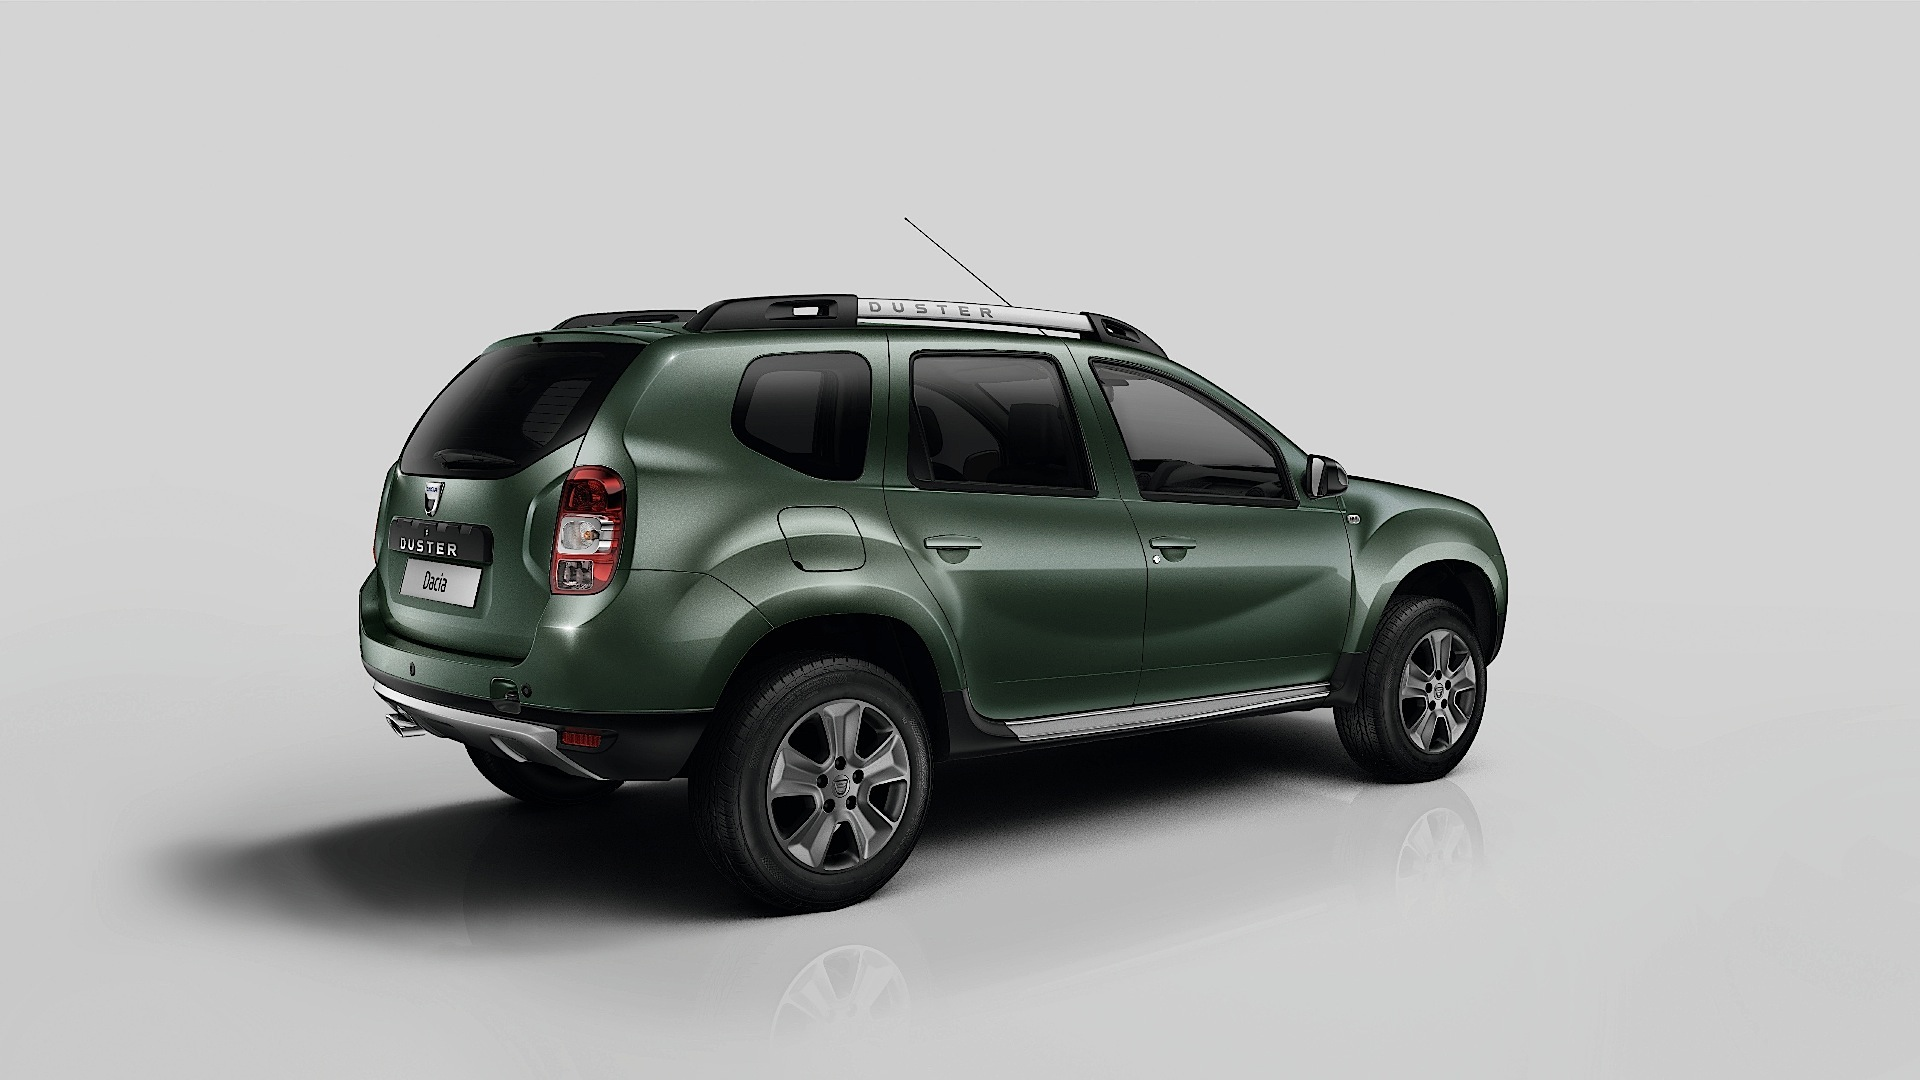 dacia duster specs photos 2013 2014 2015 2016 2017. Black Bedroom Furniture Sets. Home Design Ideas